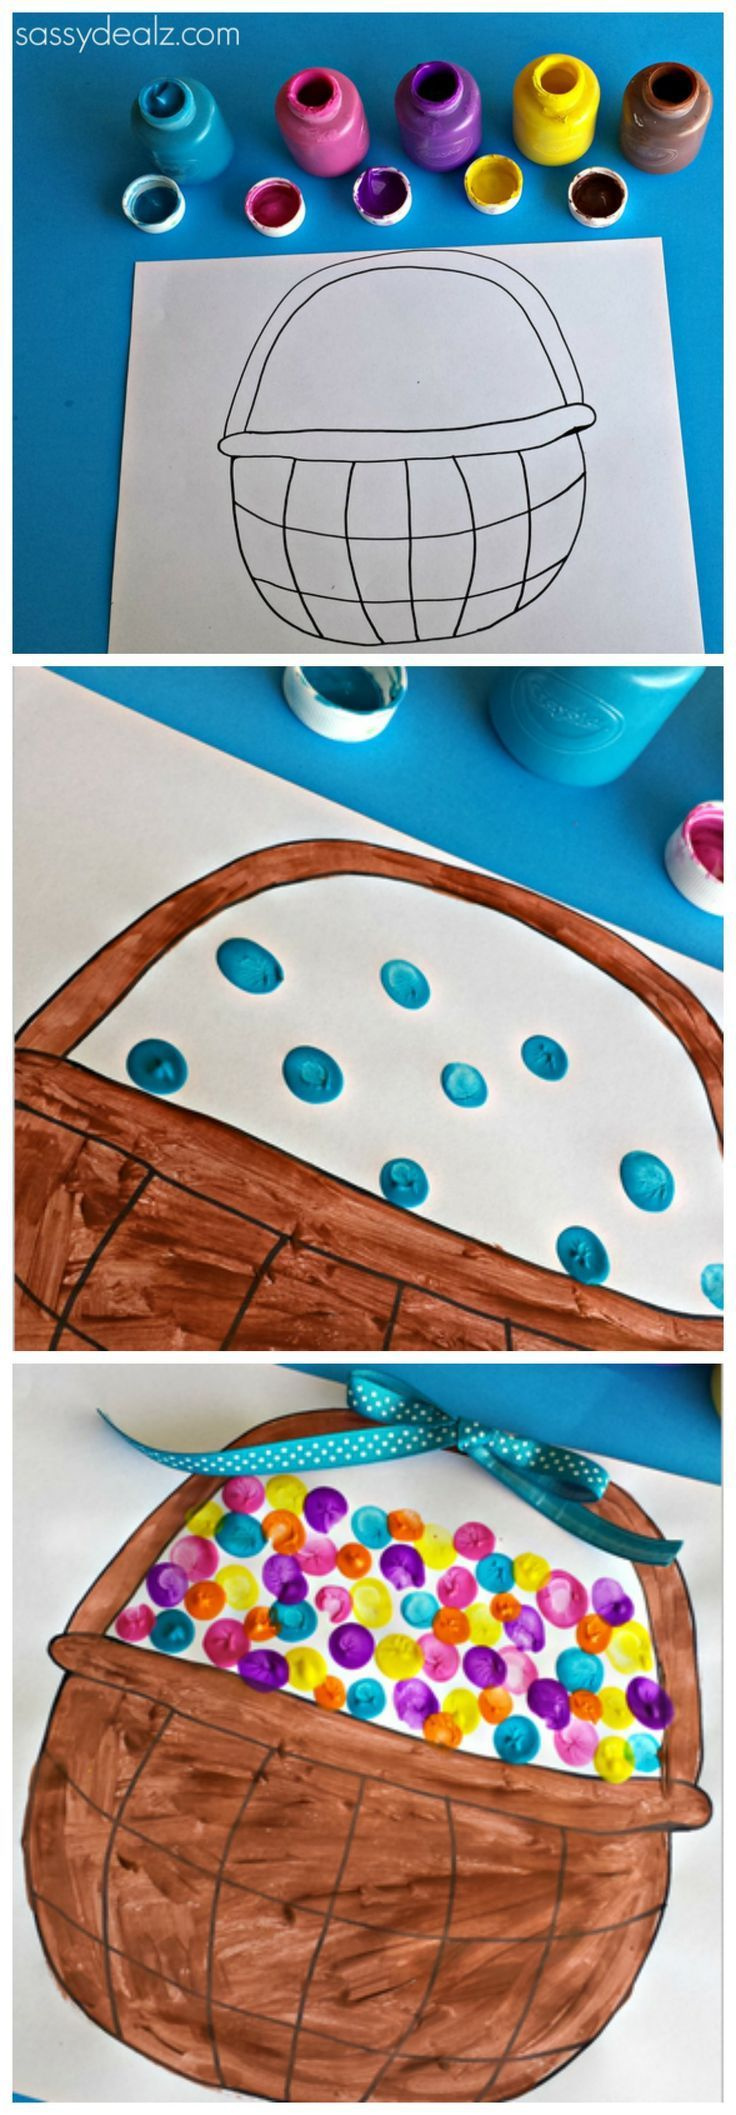 Spring coloring pages and crafts - Fingerprint Craft For Kids Easter Eggs And Free Easter Basket Coloring Page To Print